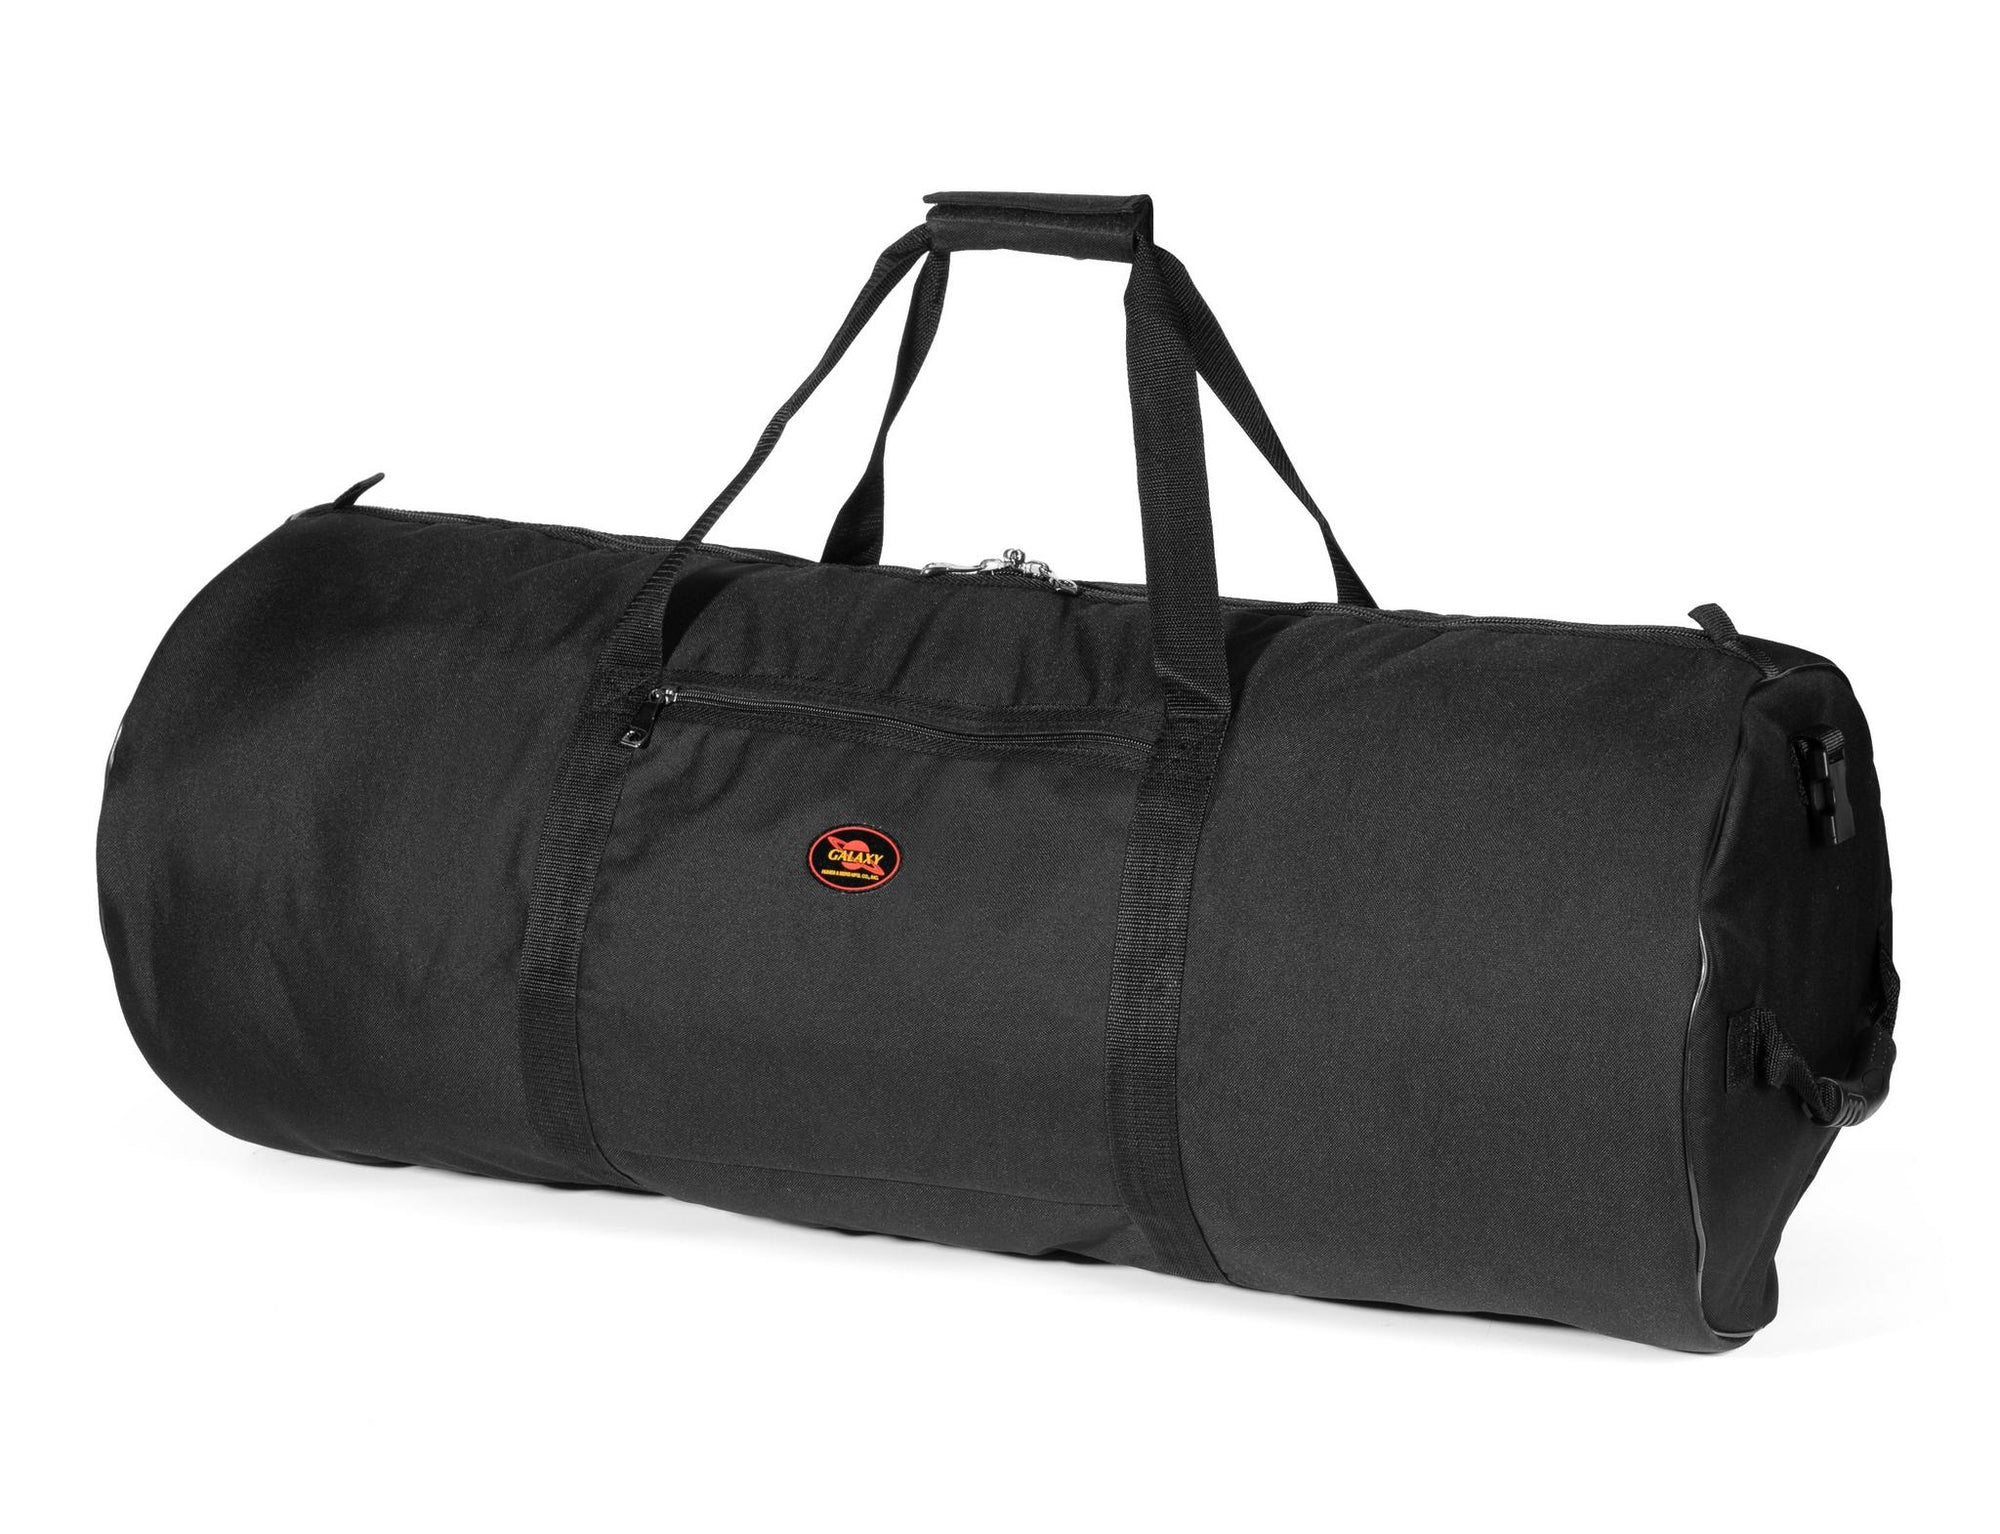 H&B  Galaxy 36 x 9 Inches Companion Bag